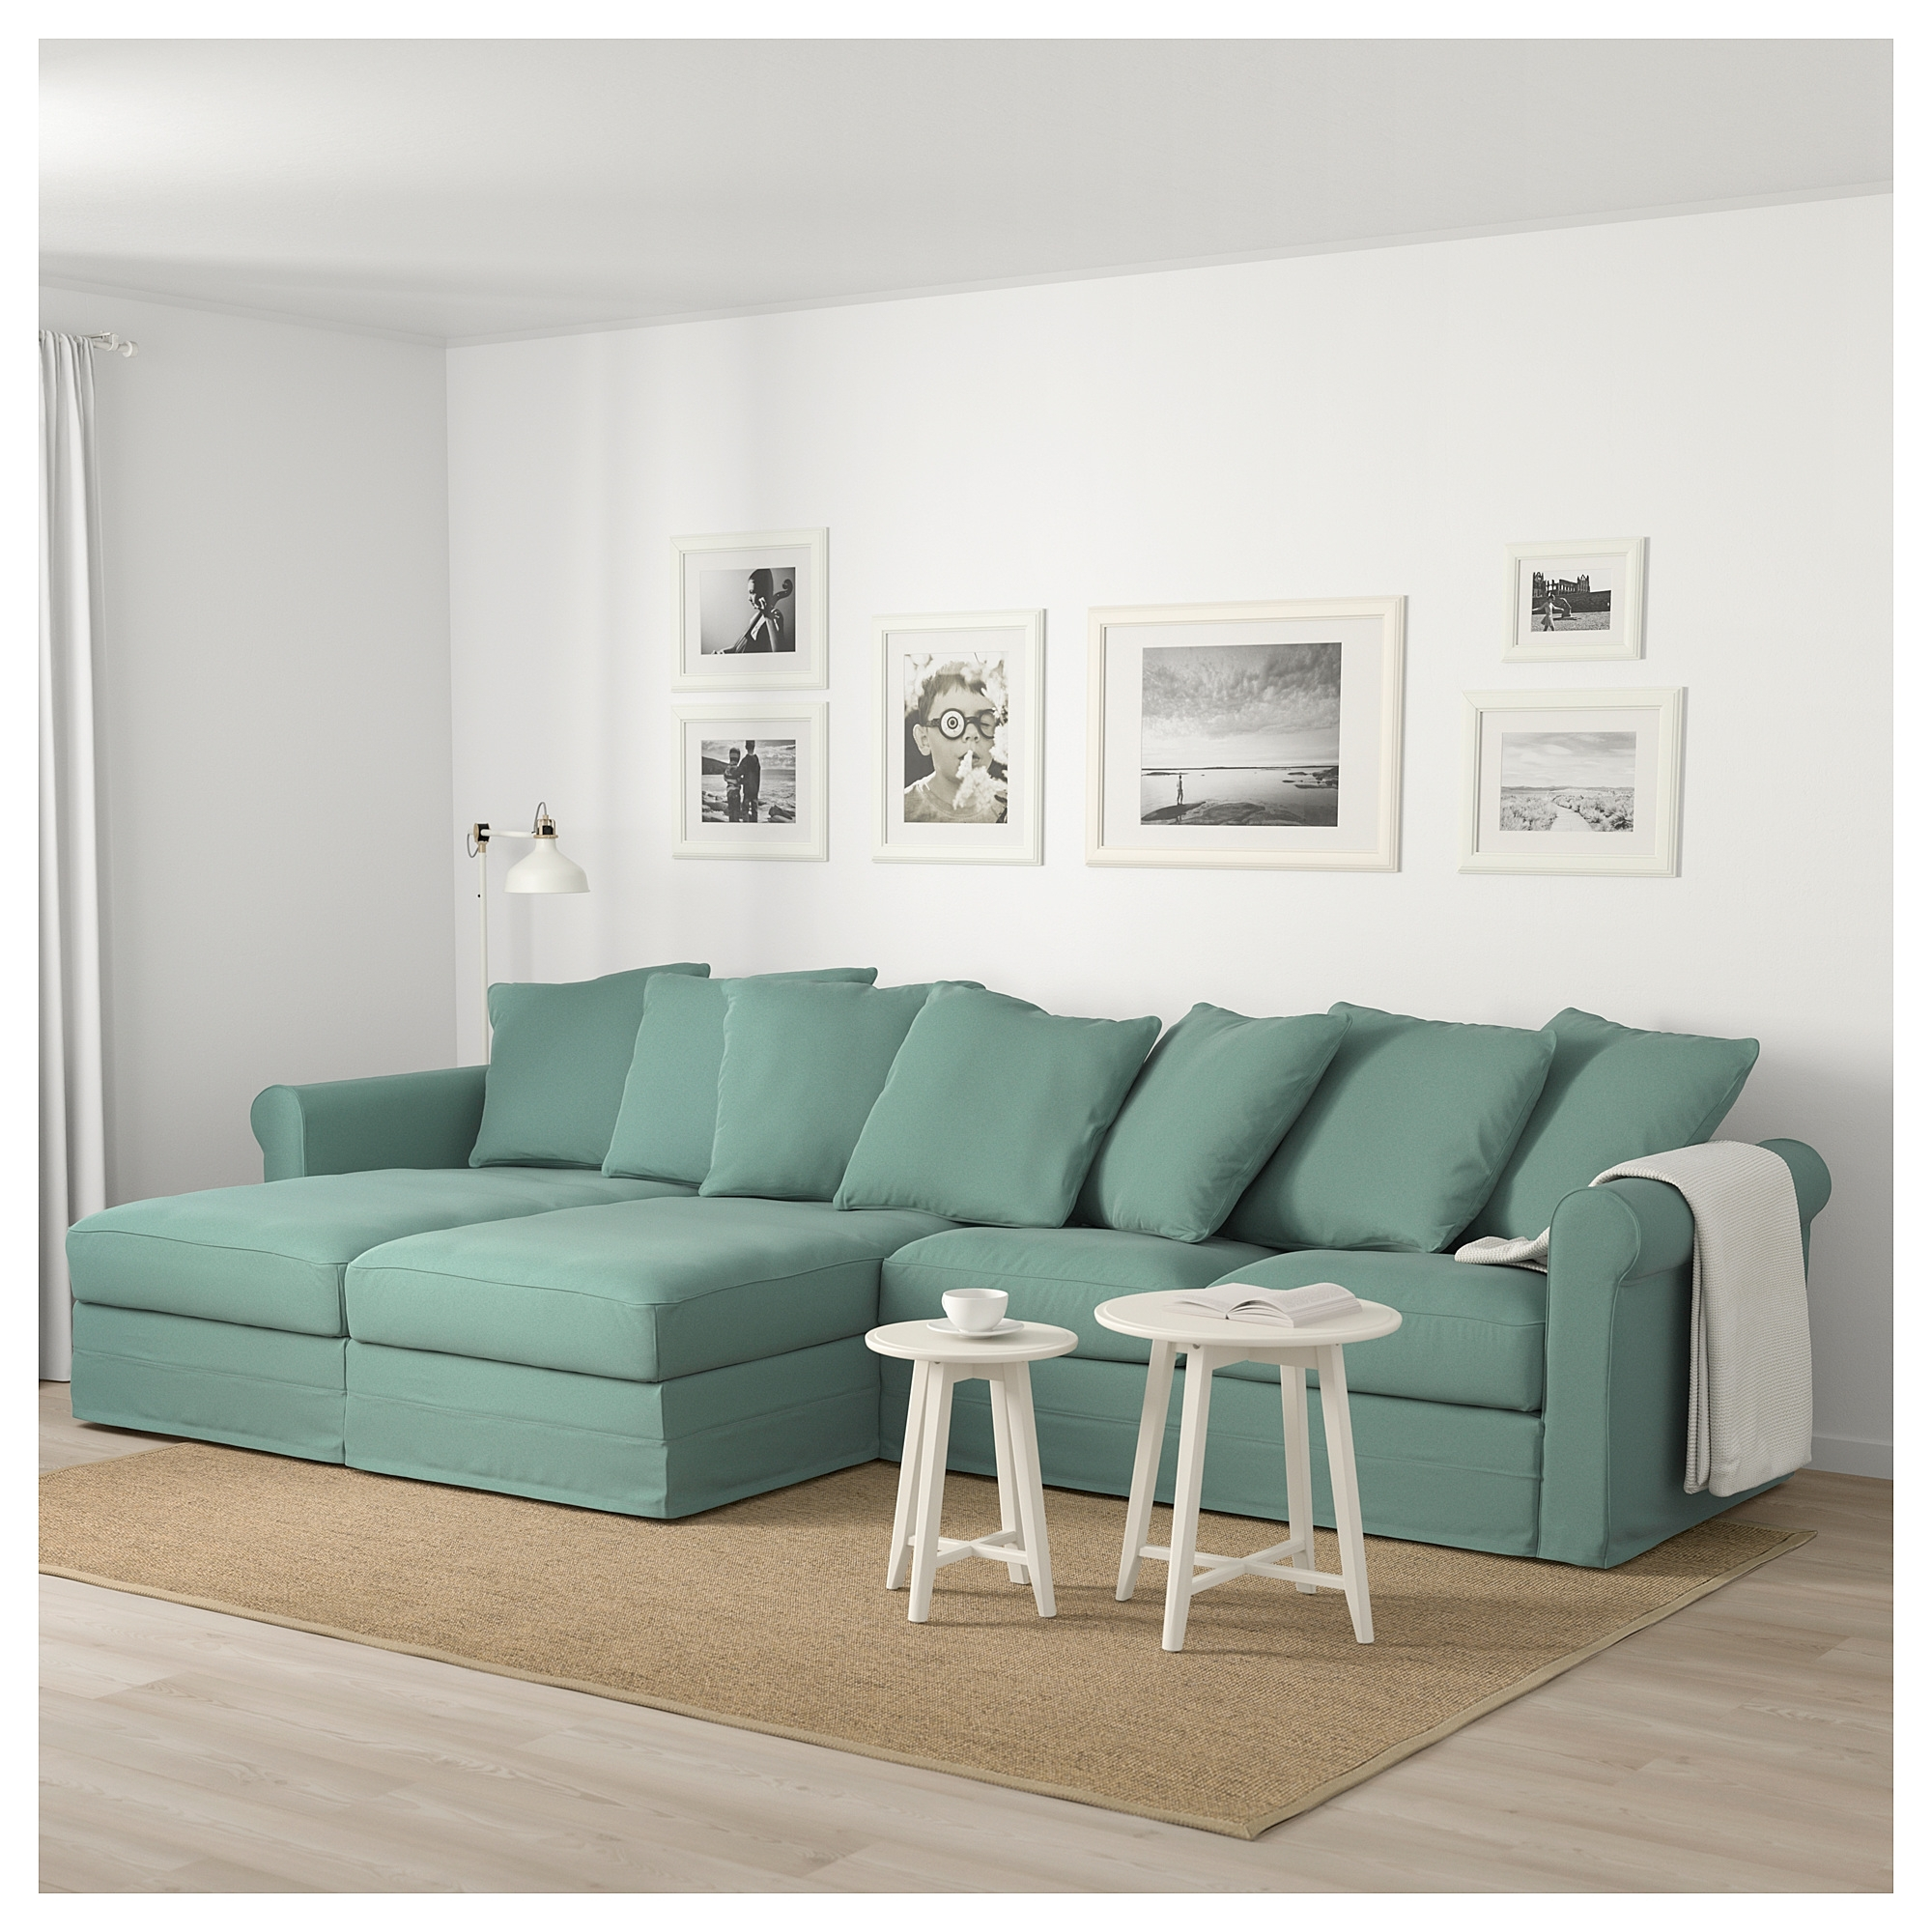 Ikea - Grönlid Sectional, 4-Seat With Chaise, Ljungen Light Green inside London Optical Reversible Sofa Chaise Sectionals